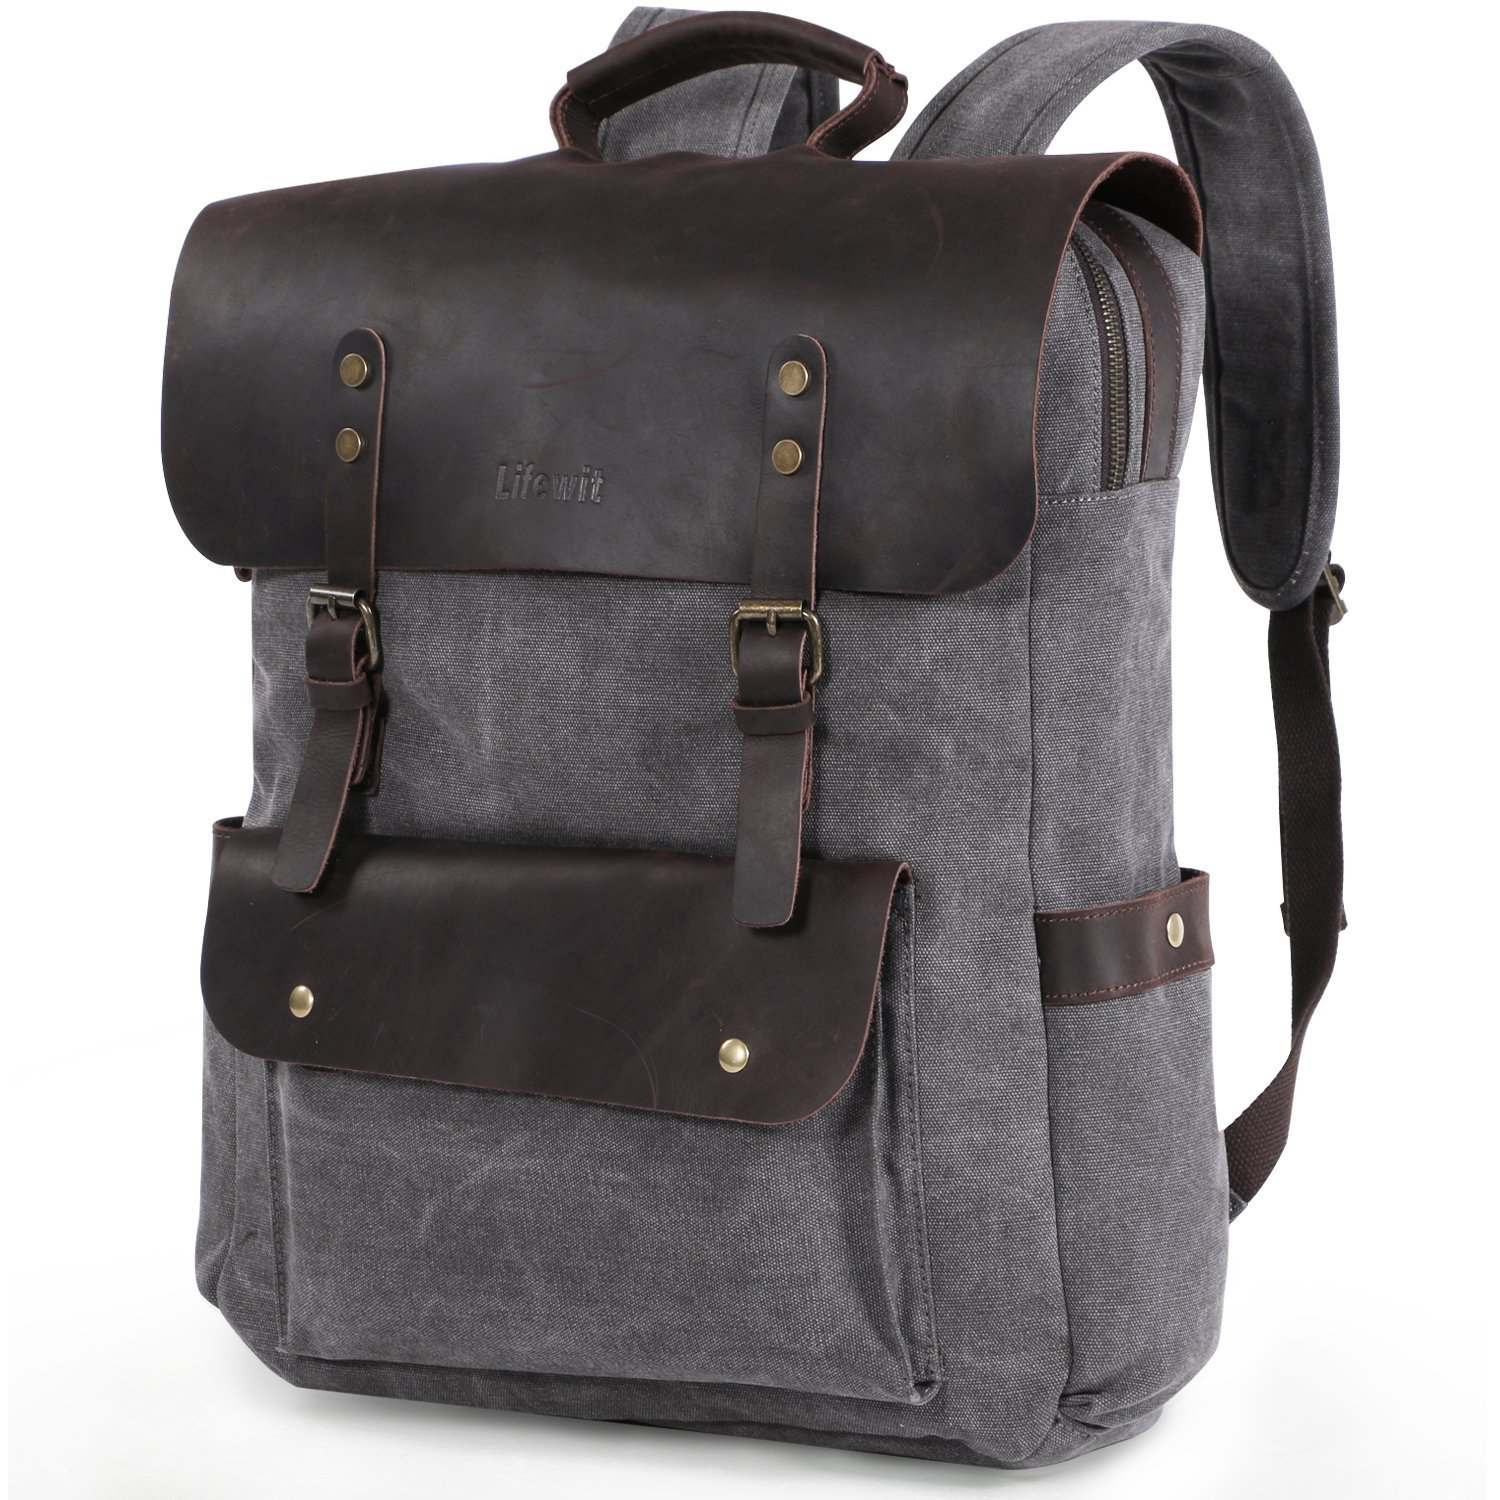 Lifewit 17.3 inch Leather Laptop Backpack Vintage Canvas Casual School Collage Bag Travel Rucksack